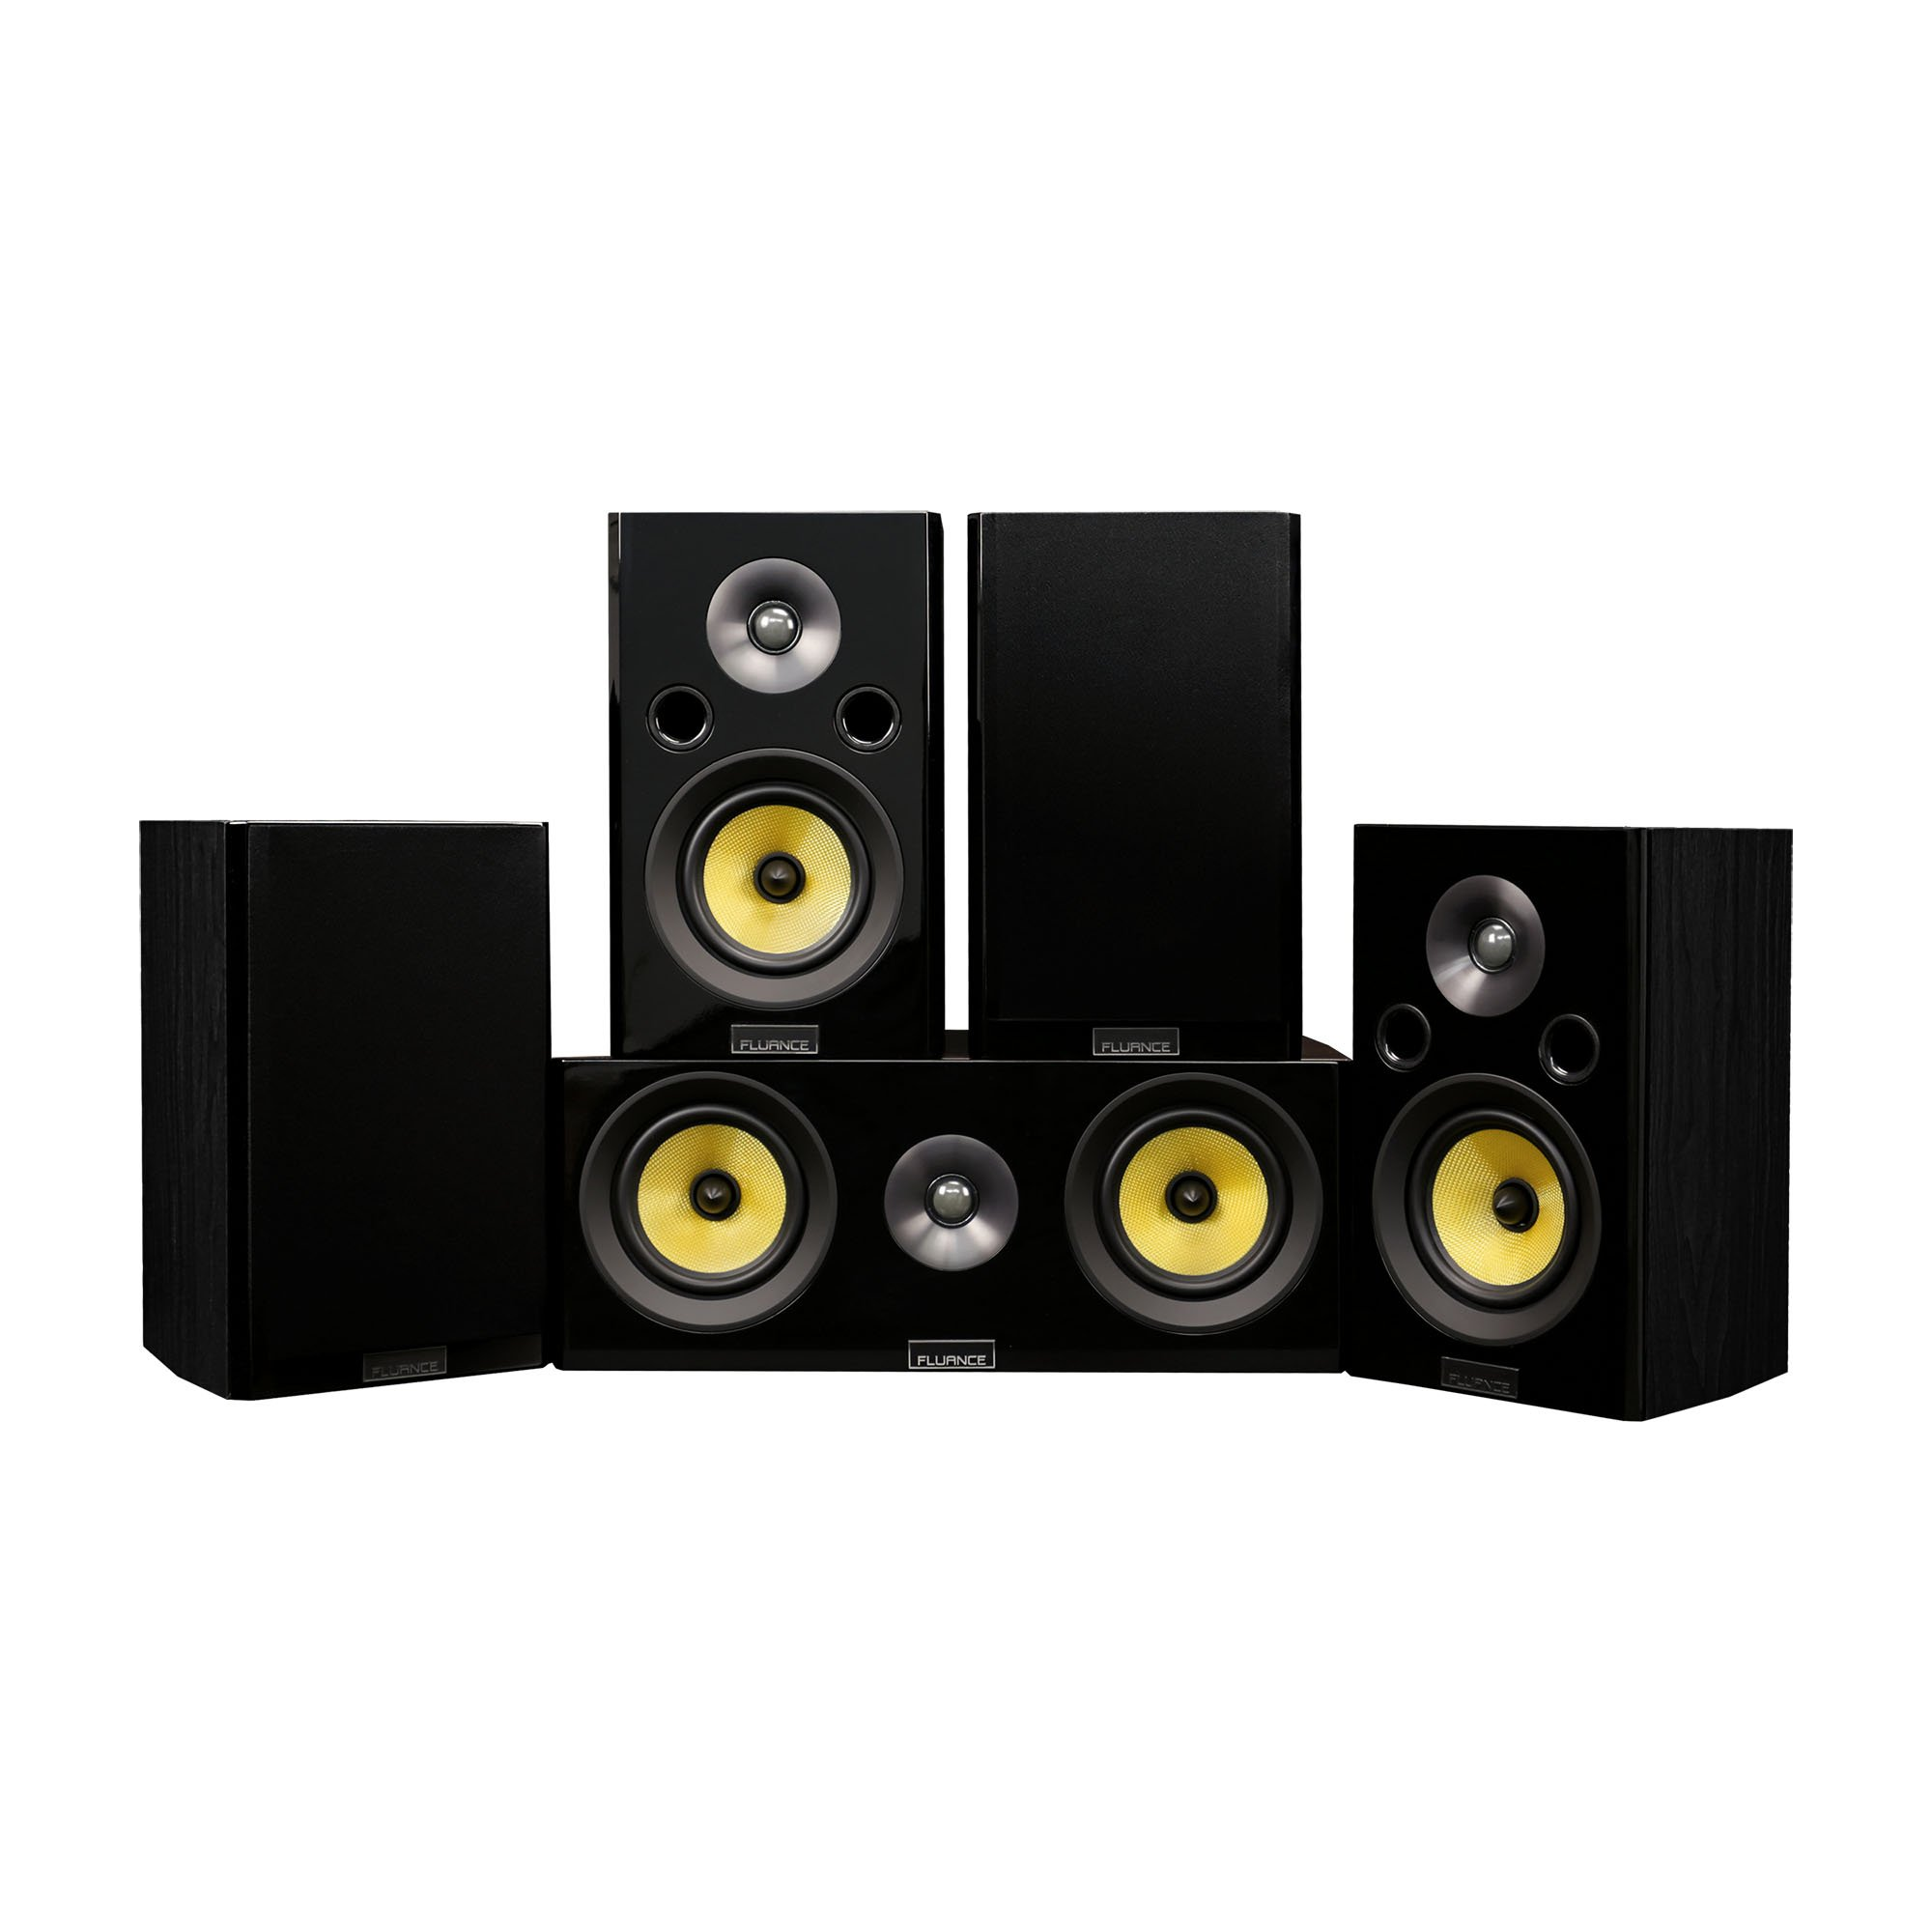 Fluance Signature Series Compact Surround Sound Home Theater 5.0 Channel Speaker System Including Two-Way Bookshelf, Center Channel, and Rear Surround Speakers - Black Ash (HF50BC)